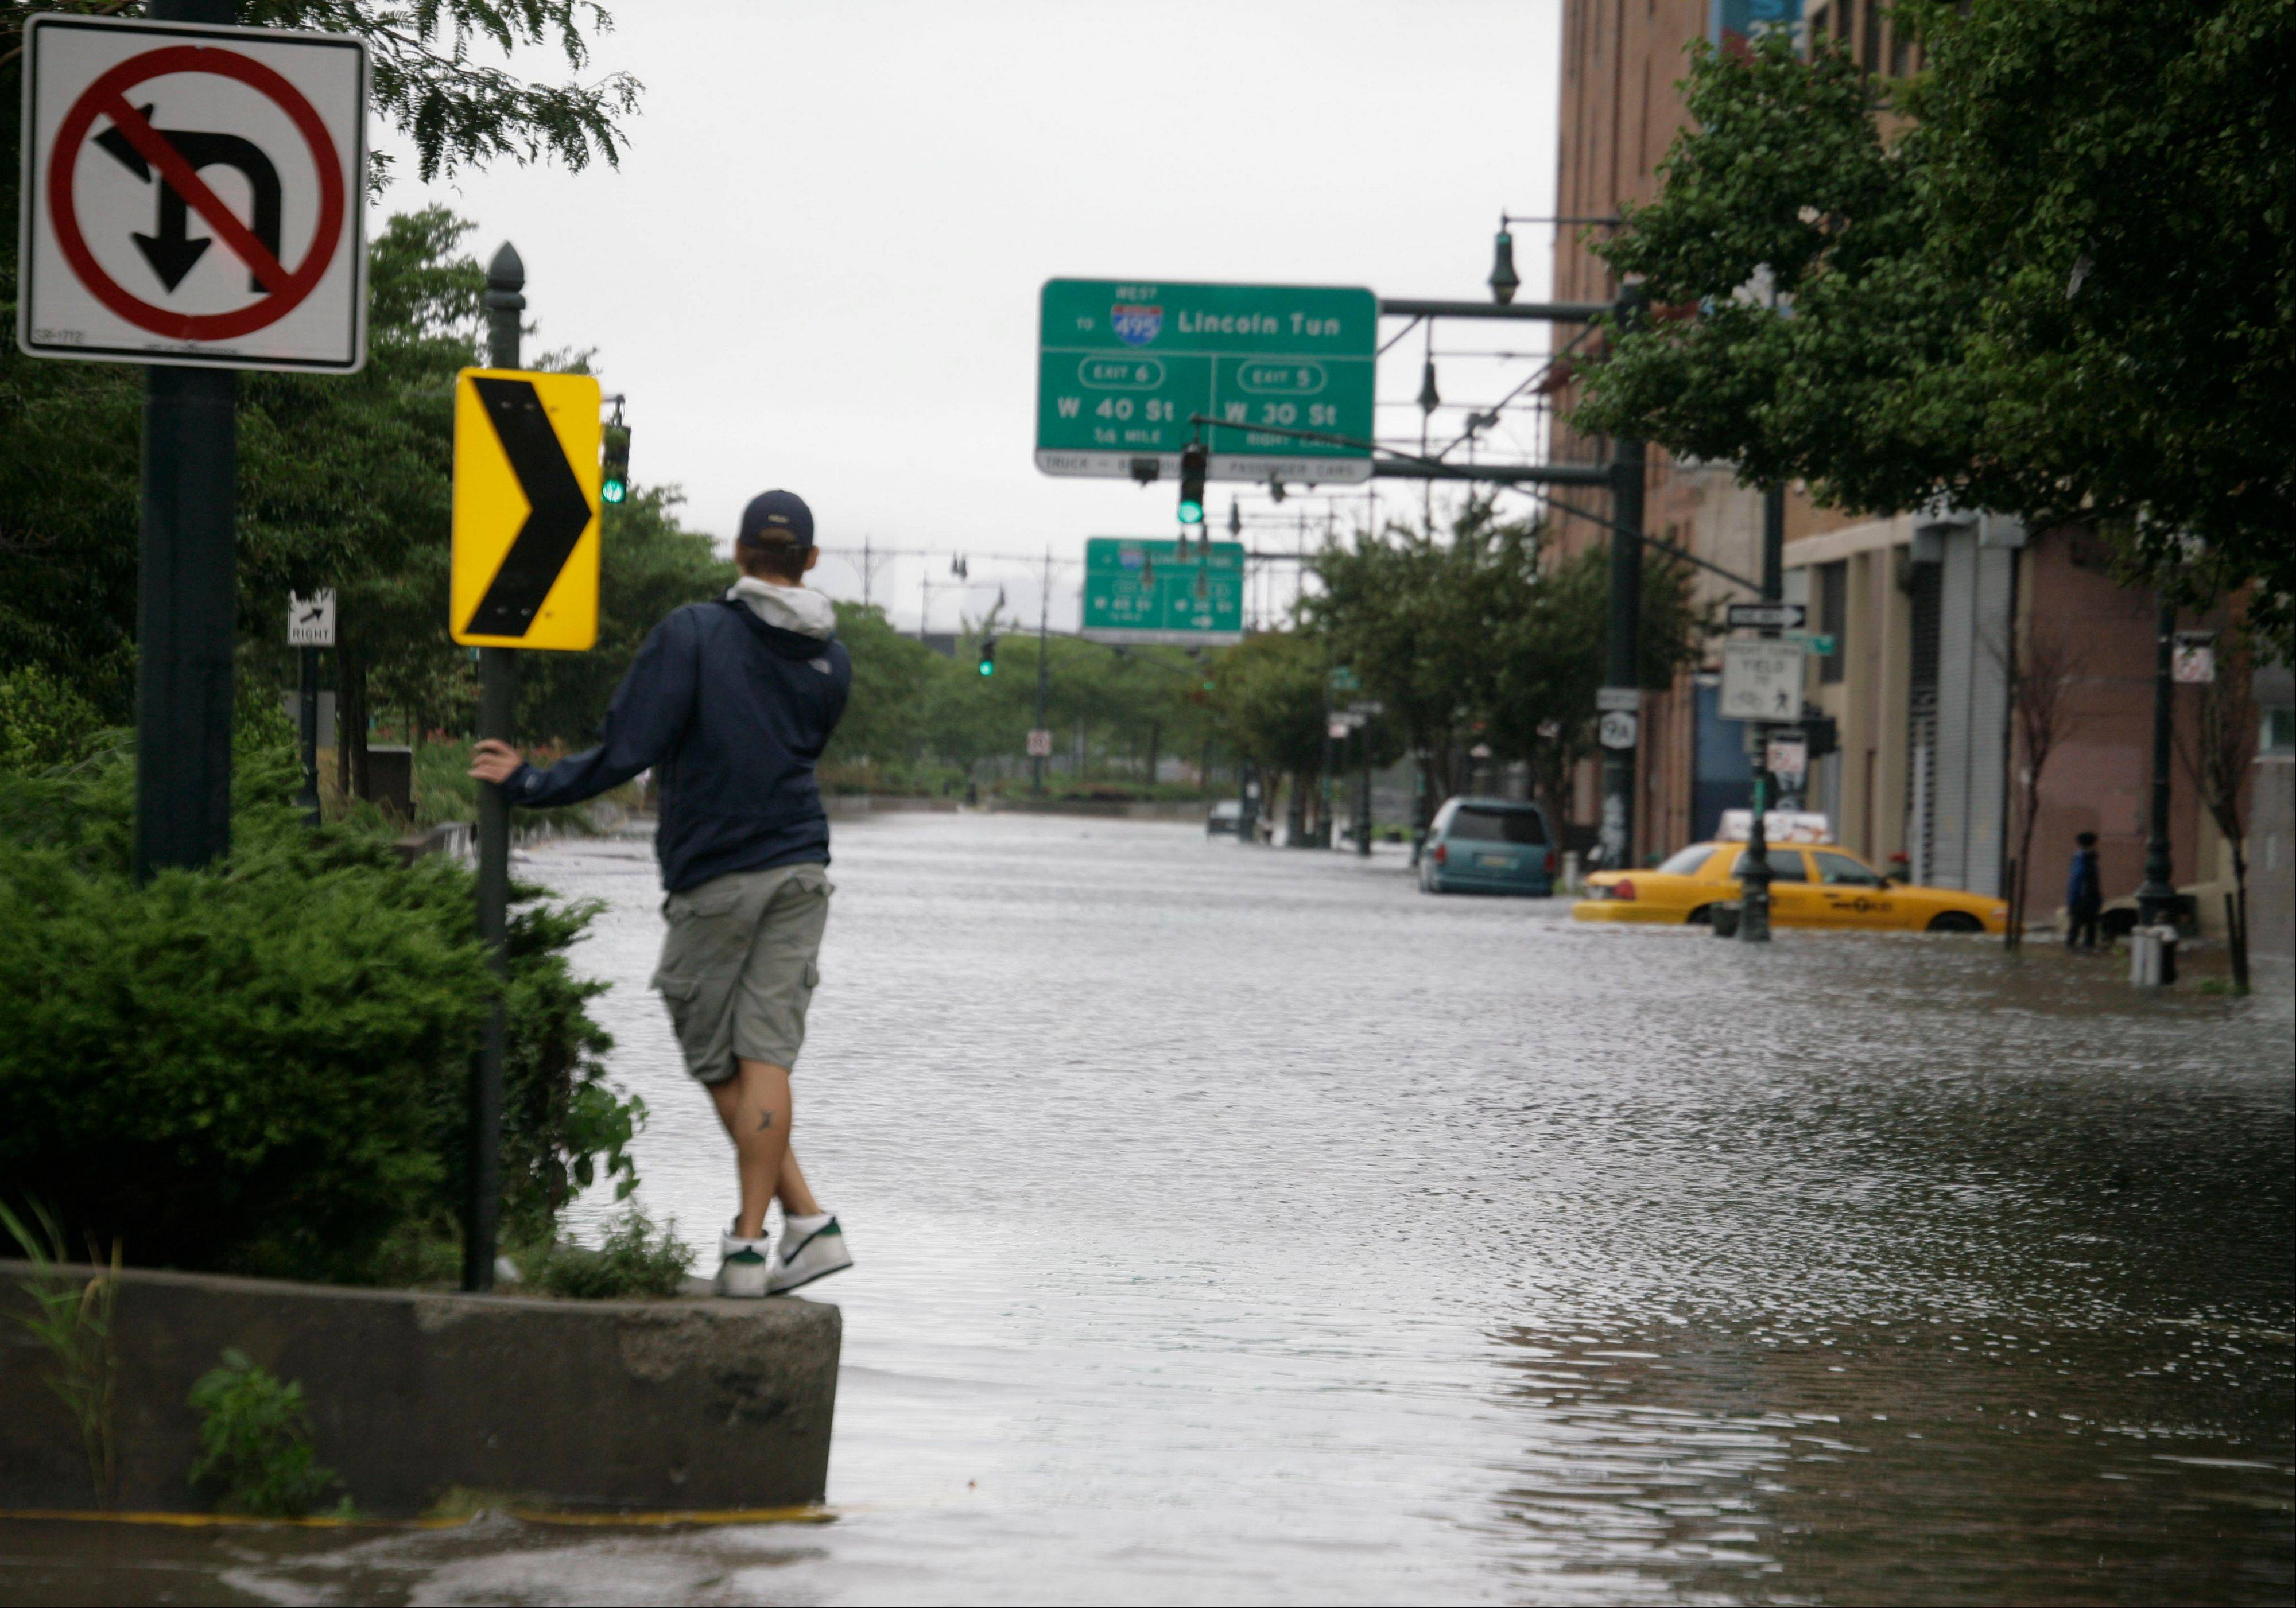 A man surveys the deep water on Manhattan�s West Side as Tropical Storm Irene passes through the city, Sunday, Aug. 28, 2011 in New York. Although downgraded from a hurricane to a tropical storm, Irene�s torrential rain couple with high winds and tides worked in concert to flood parts of the city.